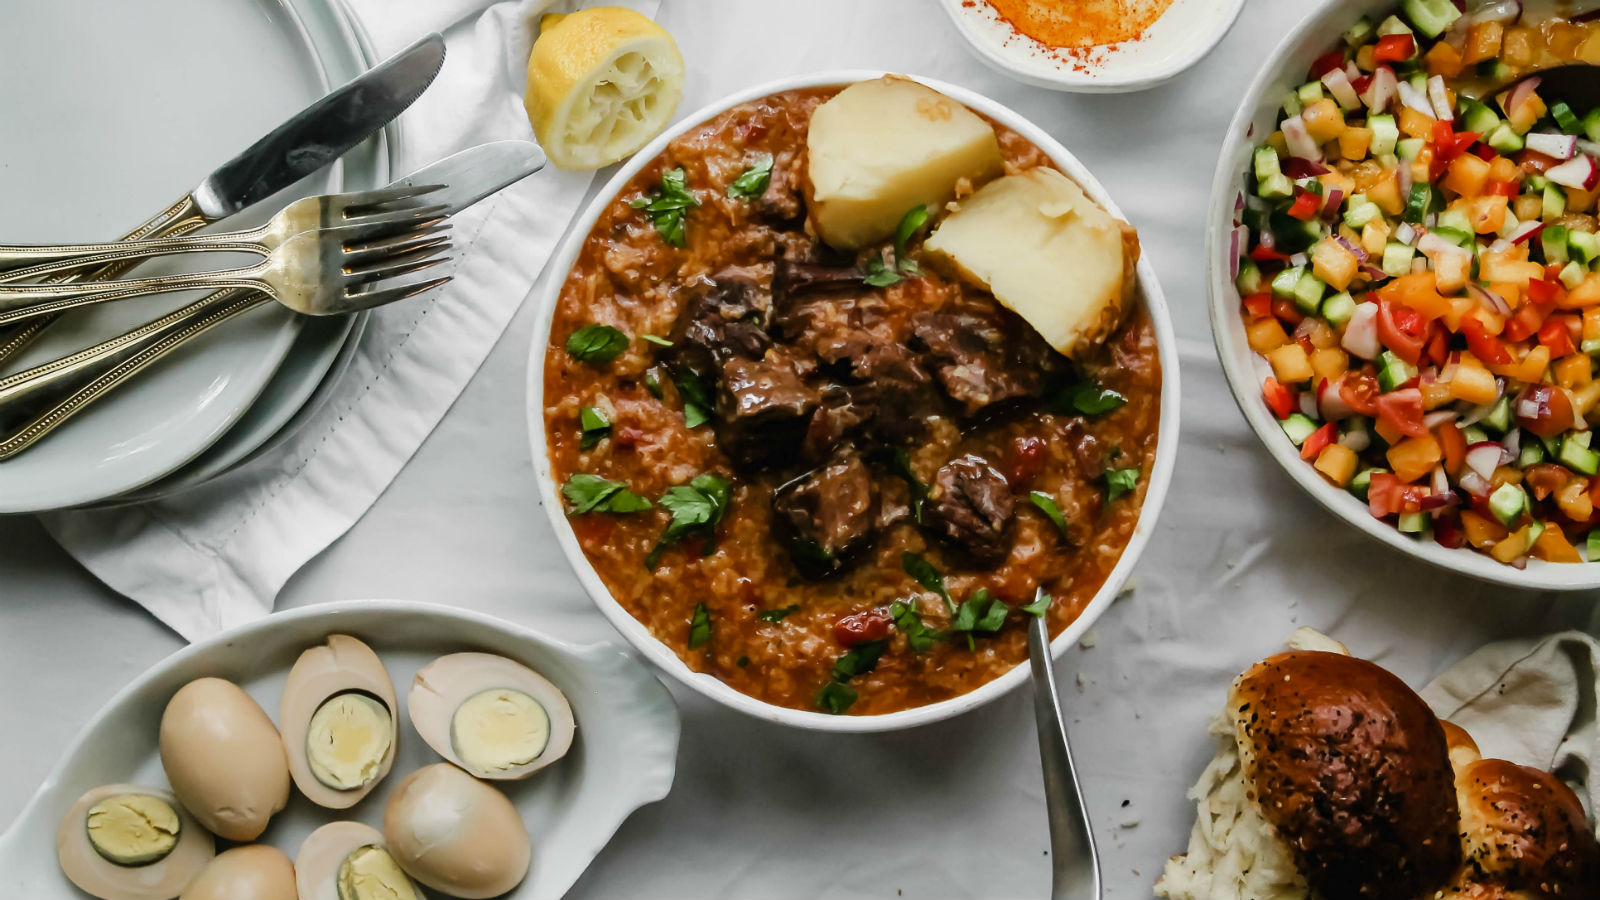 This Bukharian Jewish Meaty Rice Dish is the Crockpot Meal You Need | The Nosher